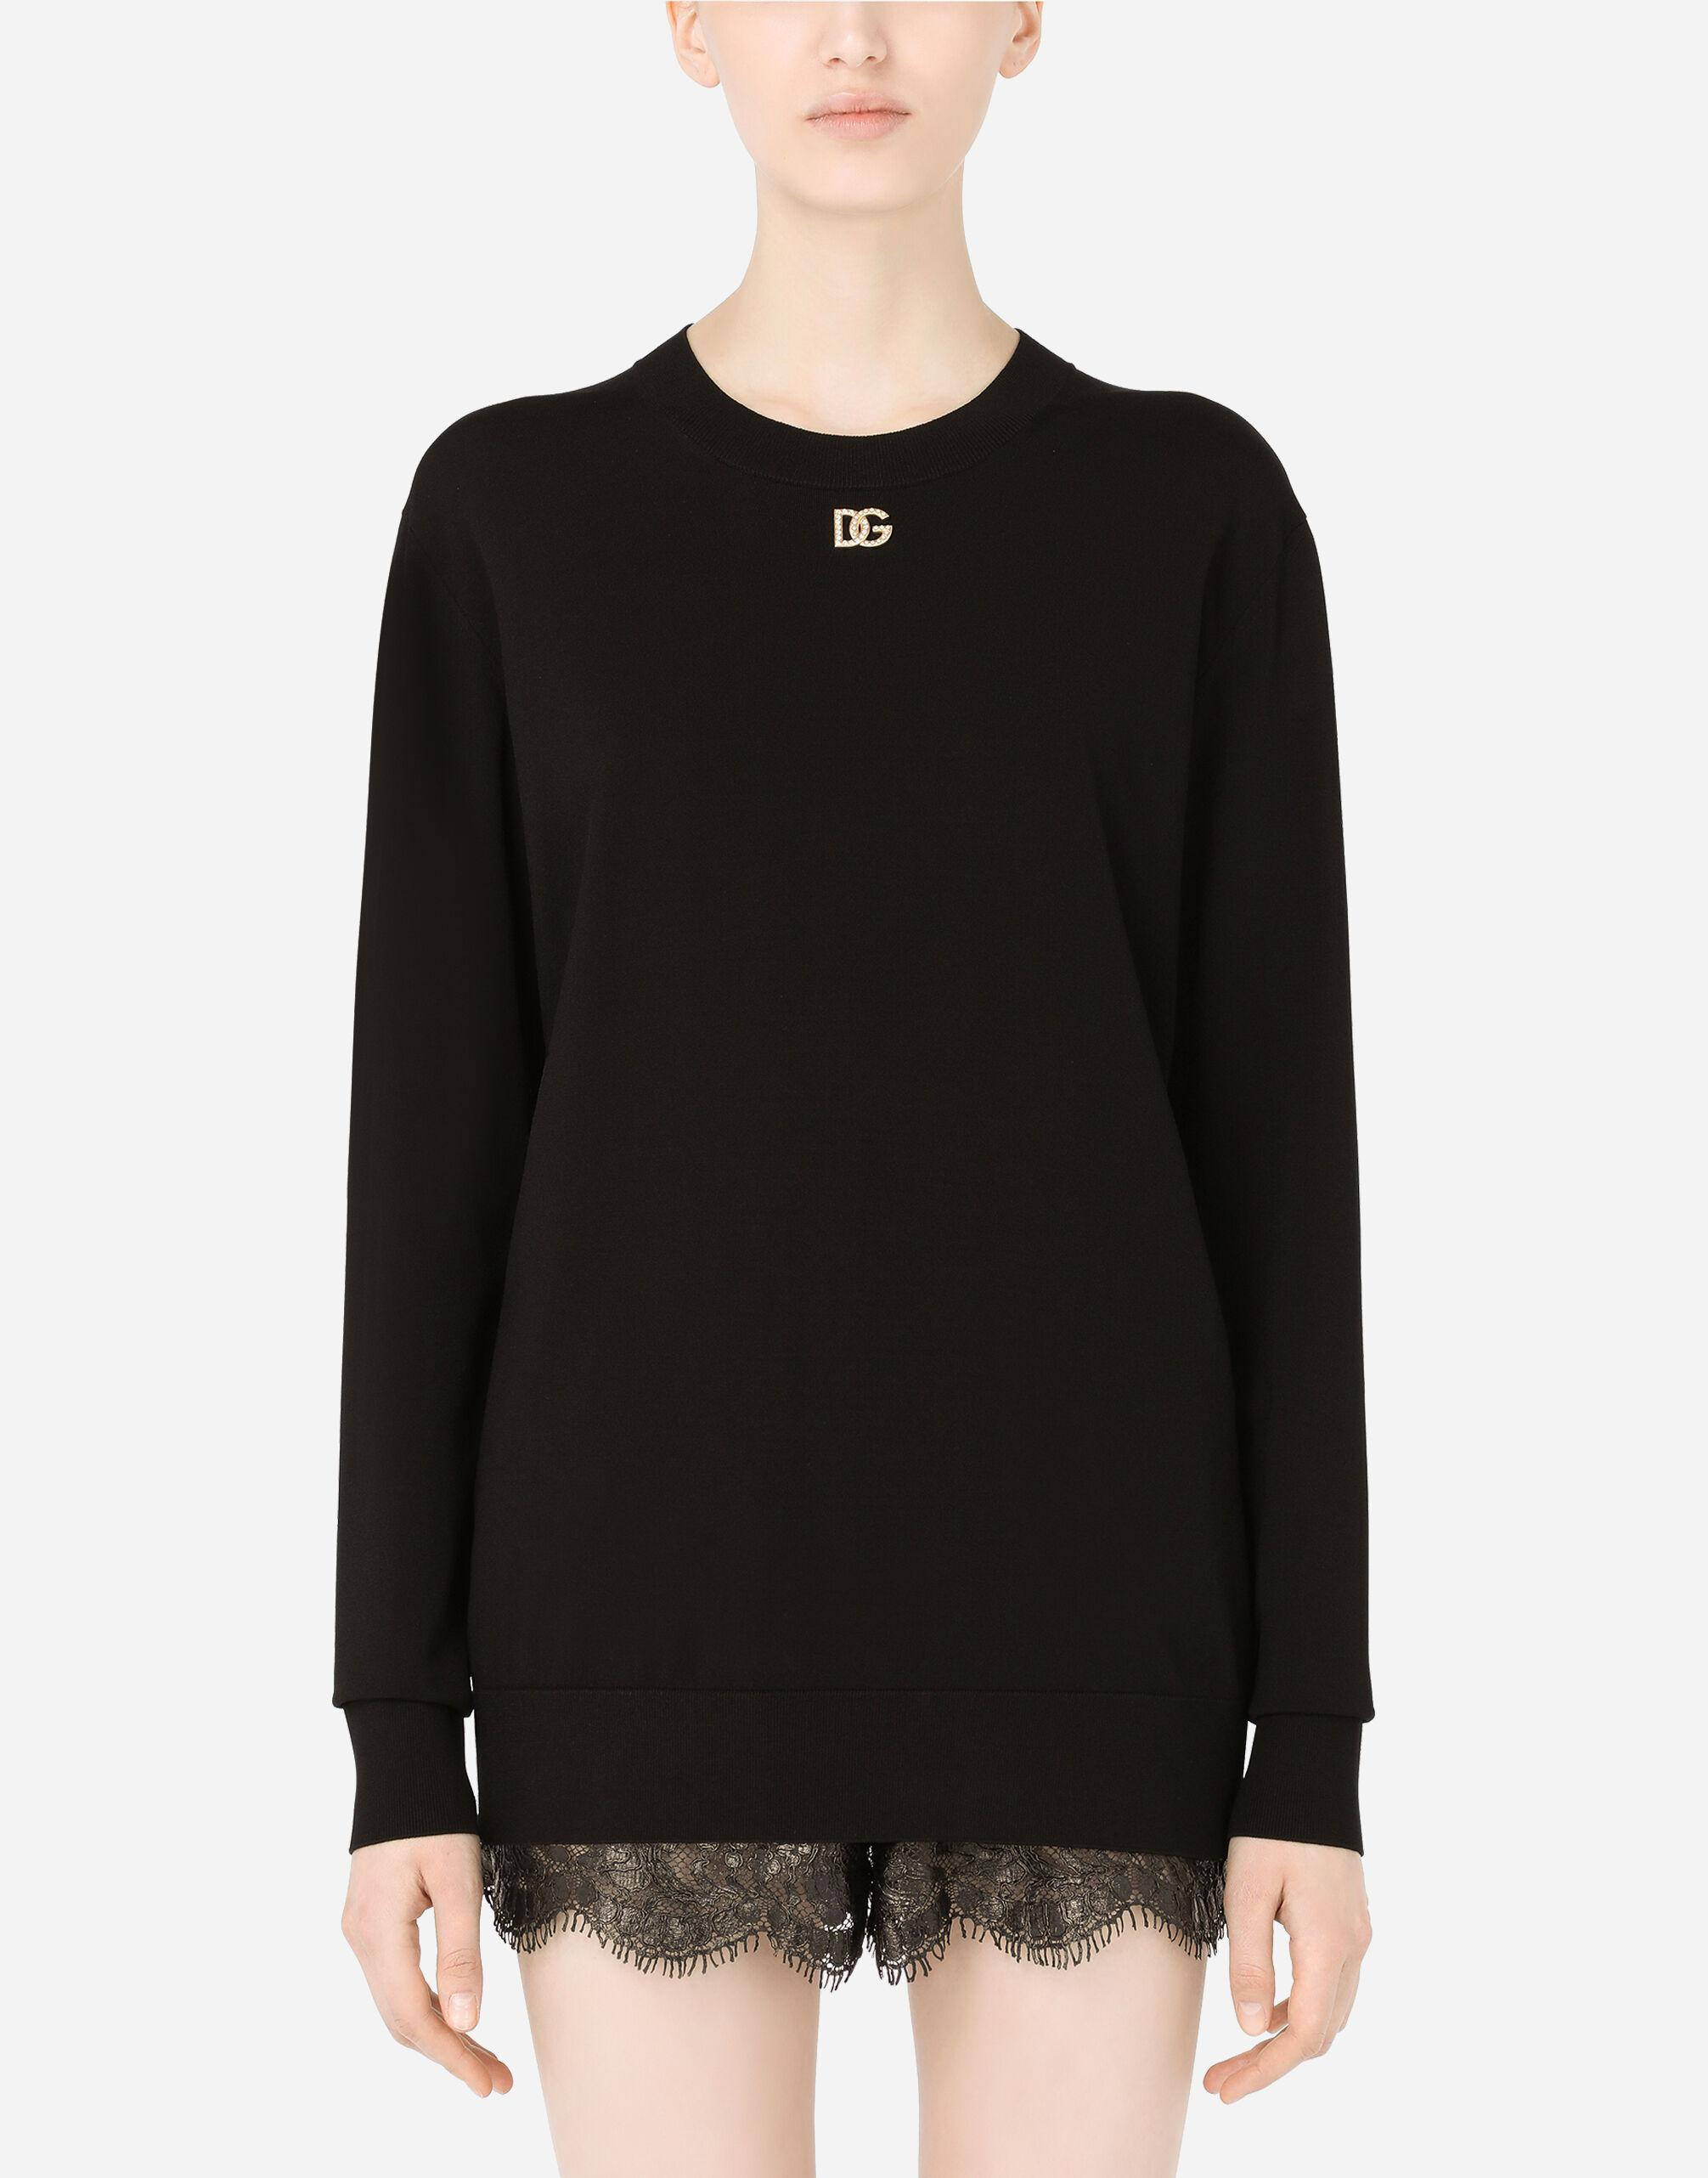 Viscose sweater with crystal DG embellishment